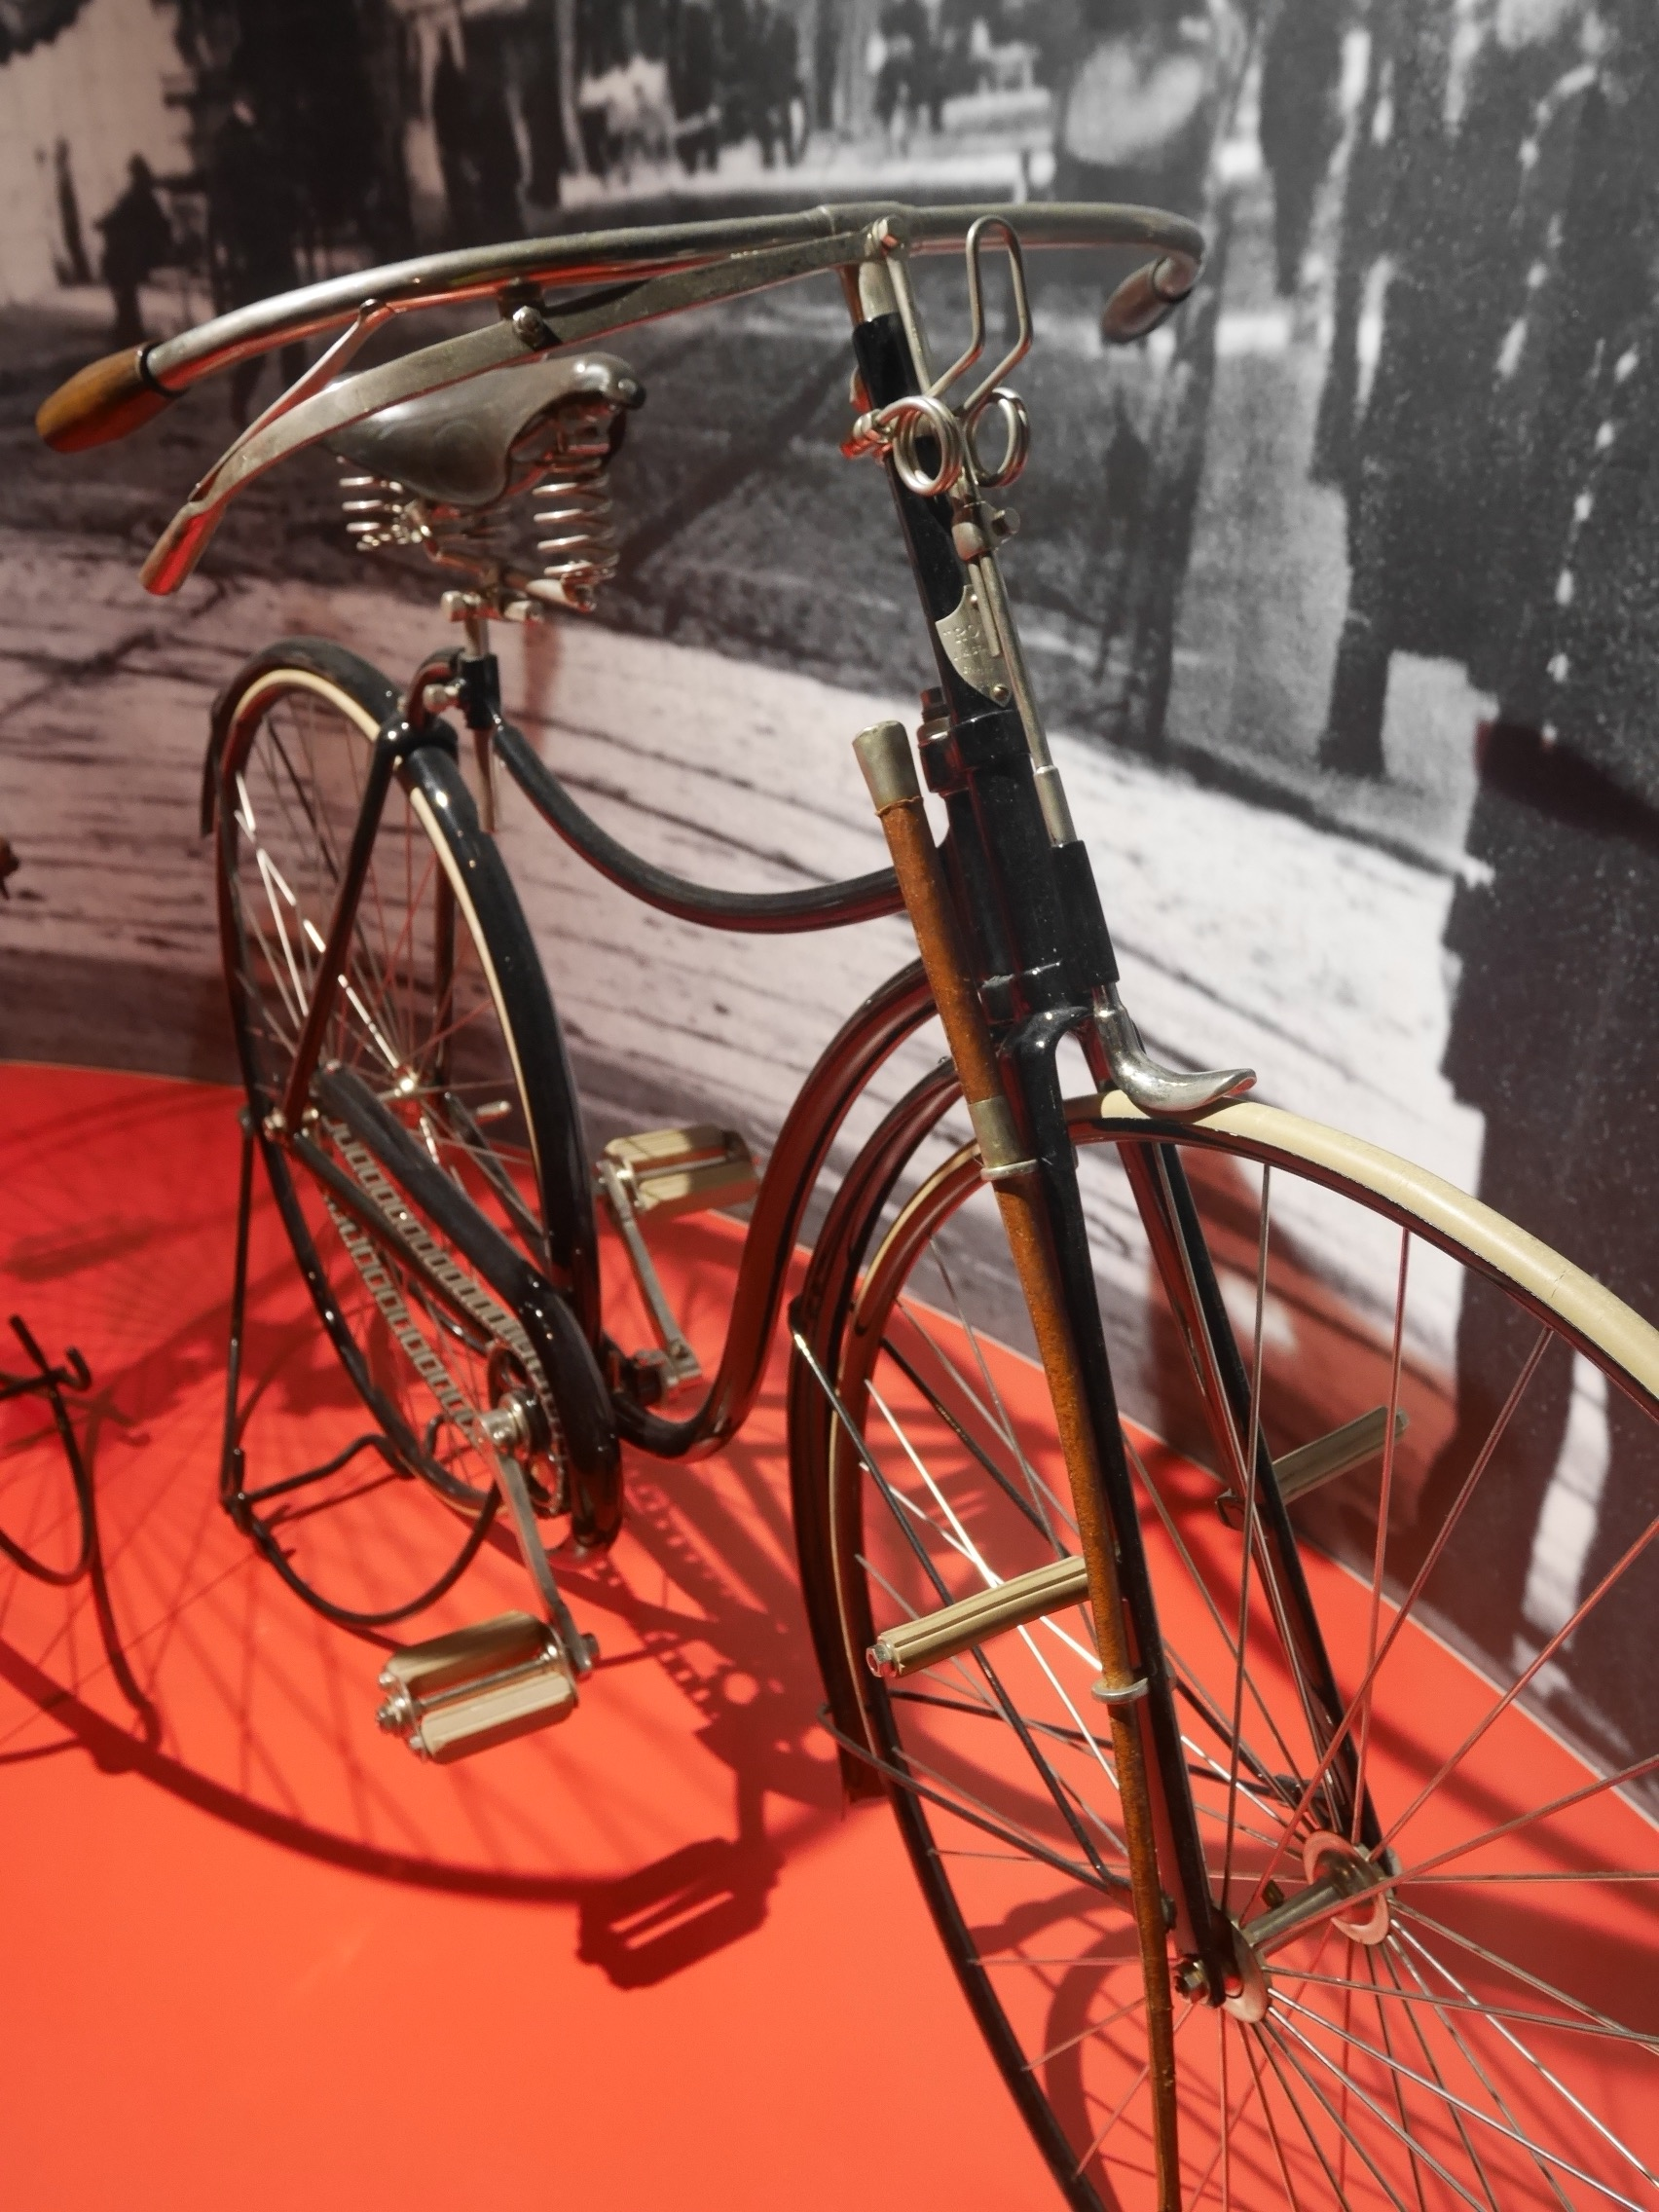 Safety Bicycle ROVER III, Dated 1888, 22.5 Kg. A Spoon Brake In Front, A Cane On The Right To Chase Off Stray Dogs.